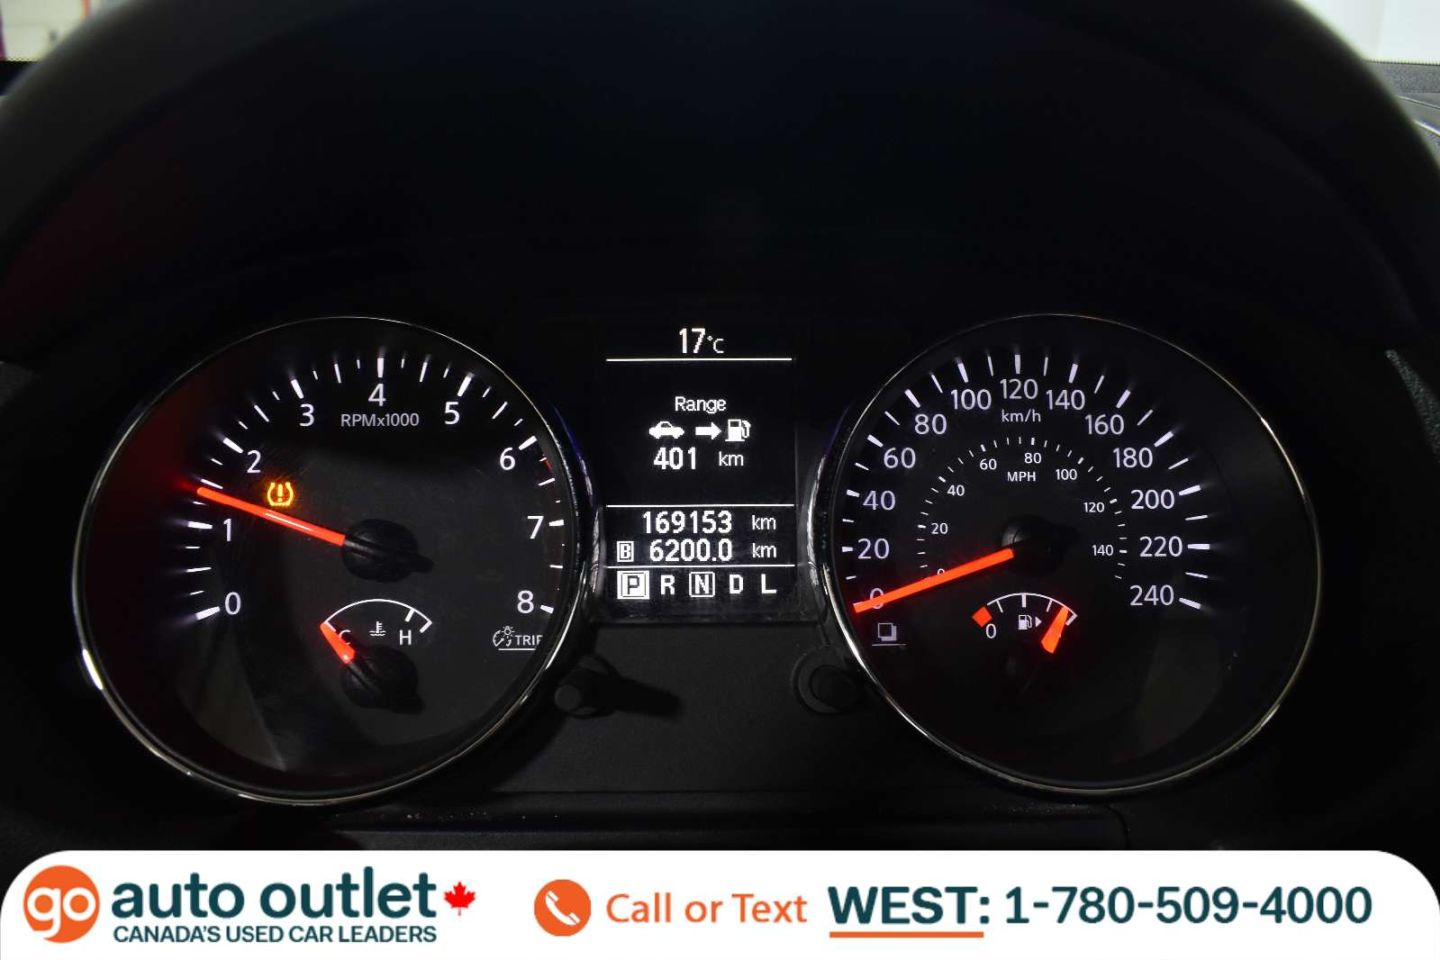 2011 Nissan Rogue S for sale in Edmonton, Alberta